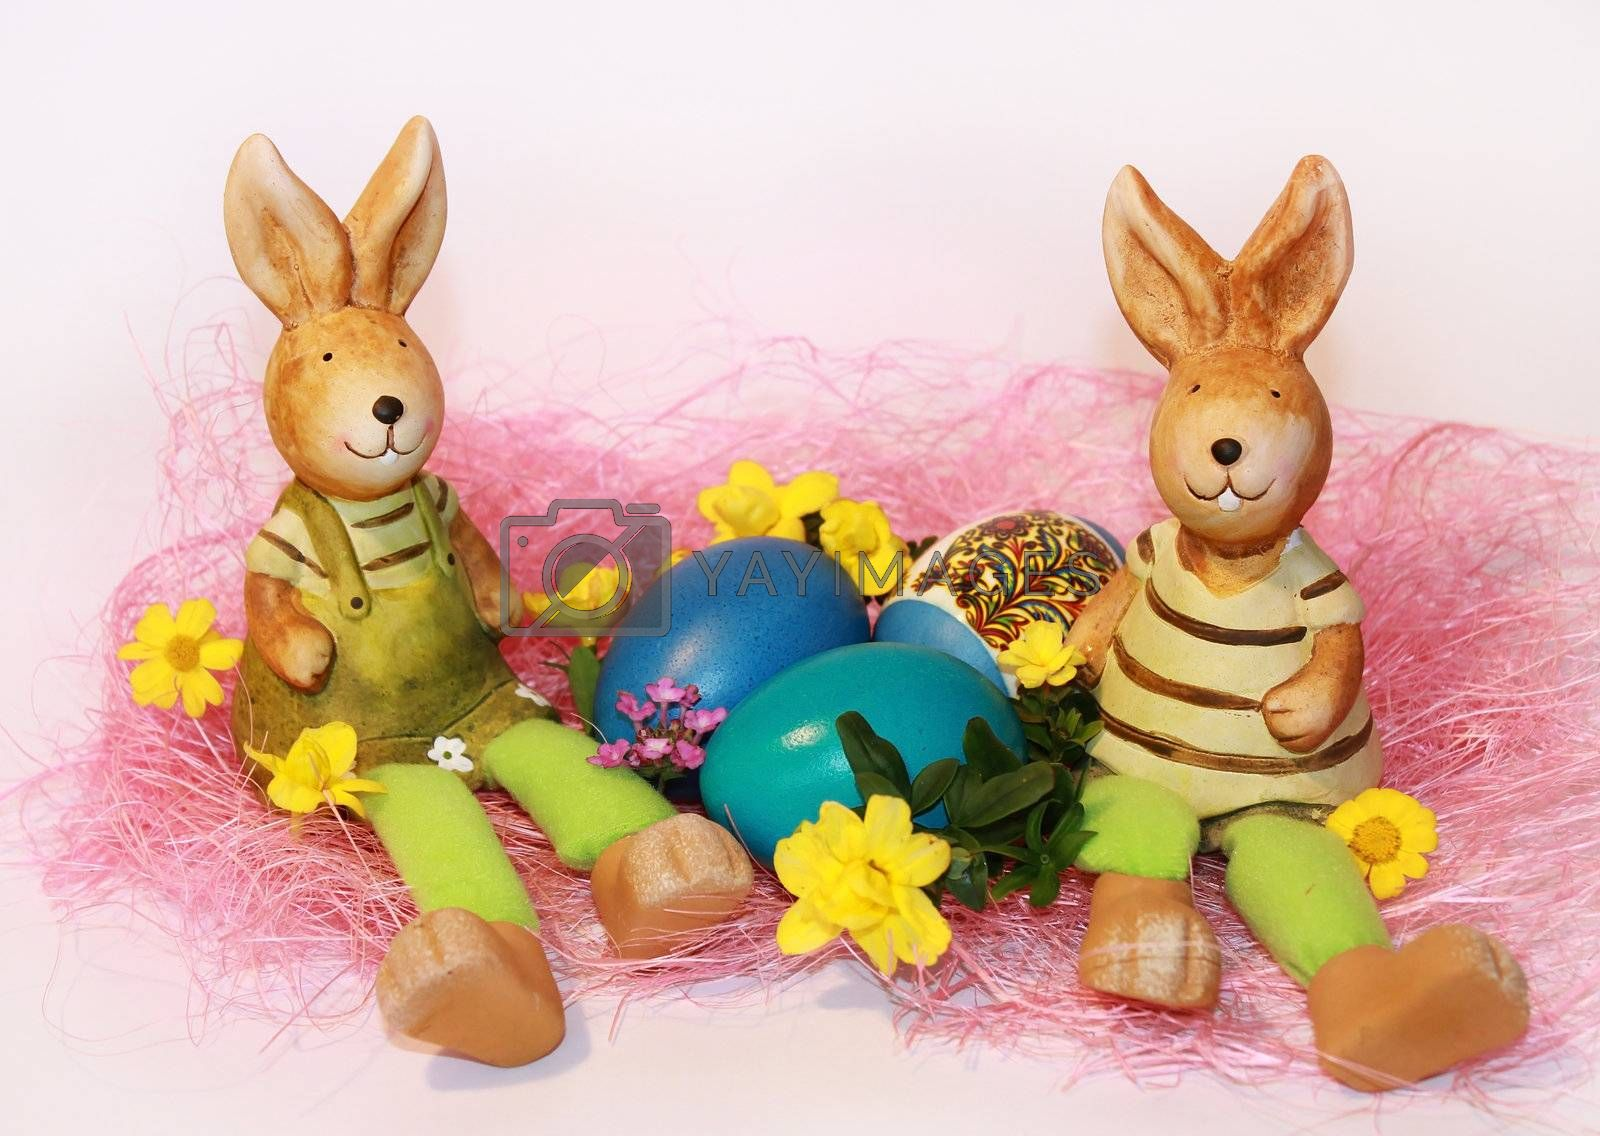 toy rabbits are sitting near the dyed Easter eggs on a white background